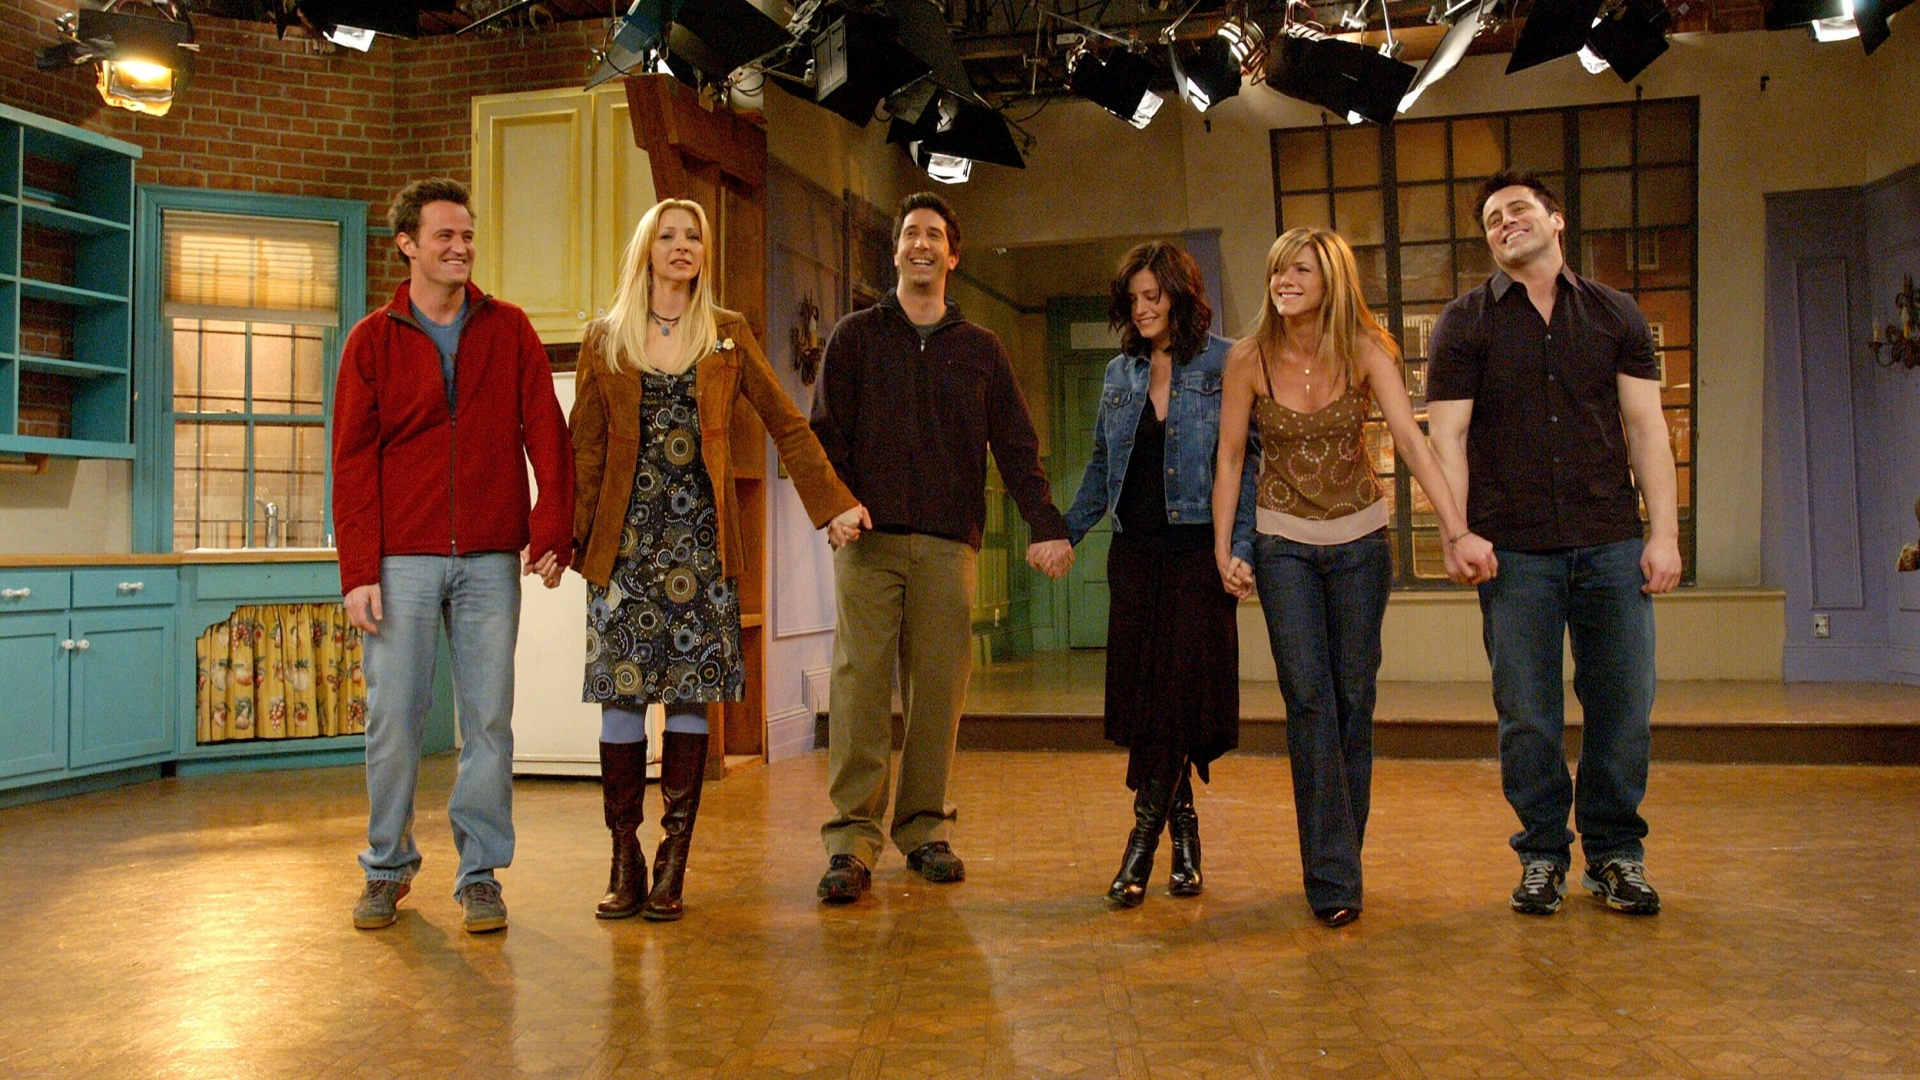 1920x1080-friends-chandler-bing-phoebe-buffay-ross-geller-monica-geller-rachel-green-wallpaper-wp380916